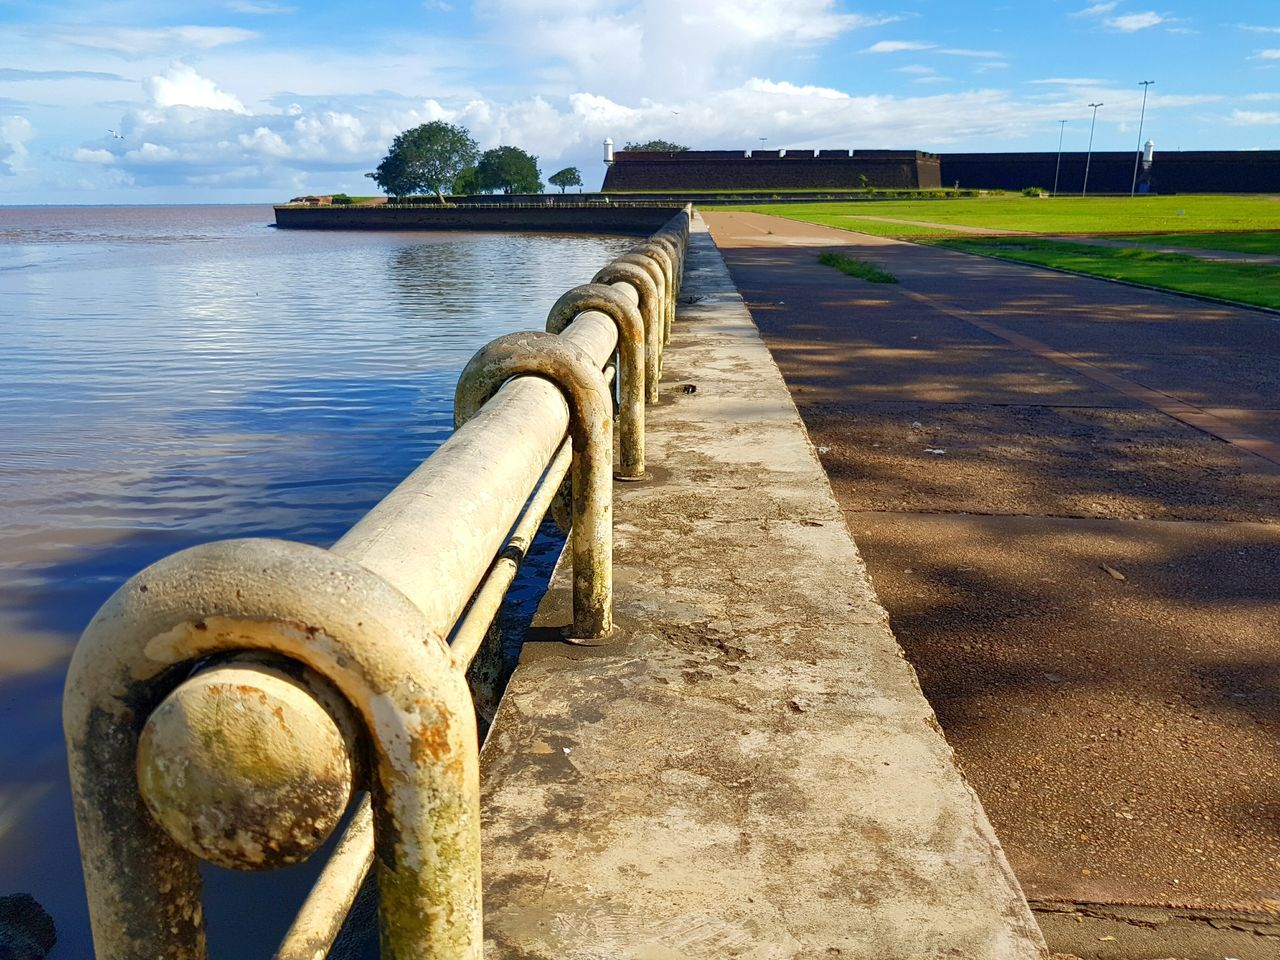 The Secret Spaces River Collection Brazil Natural Beauty River Amazonas Biggest River In The World Military Weapon Water Sea No People Close-up Outdoors Day Cloud - Sky Sky Nature Beauty In Nature Premium Collection Getty Images EyeEmNewHere River Amazon River Brazil Fortress Wonderful